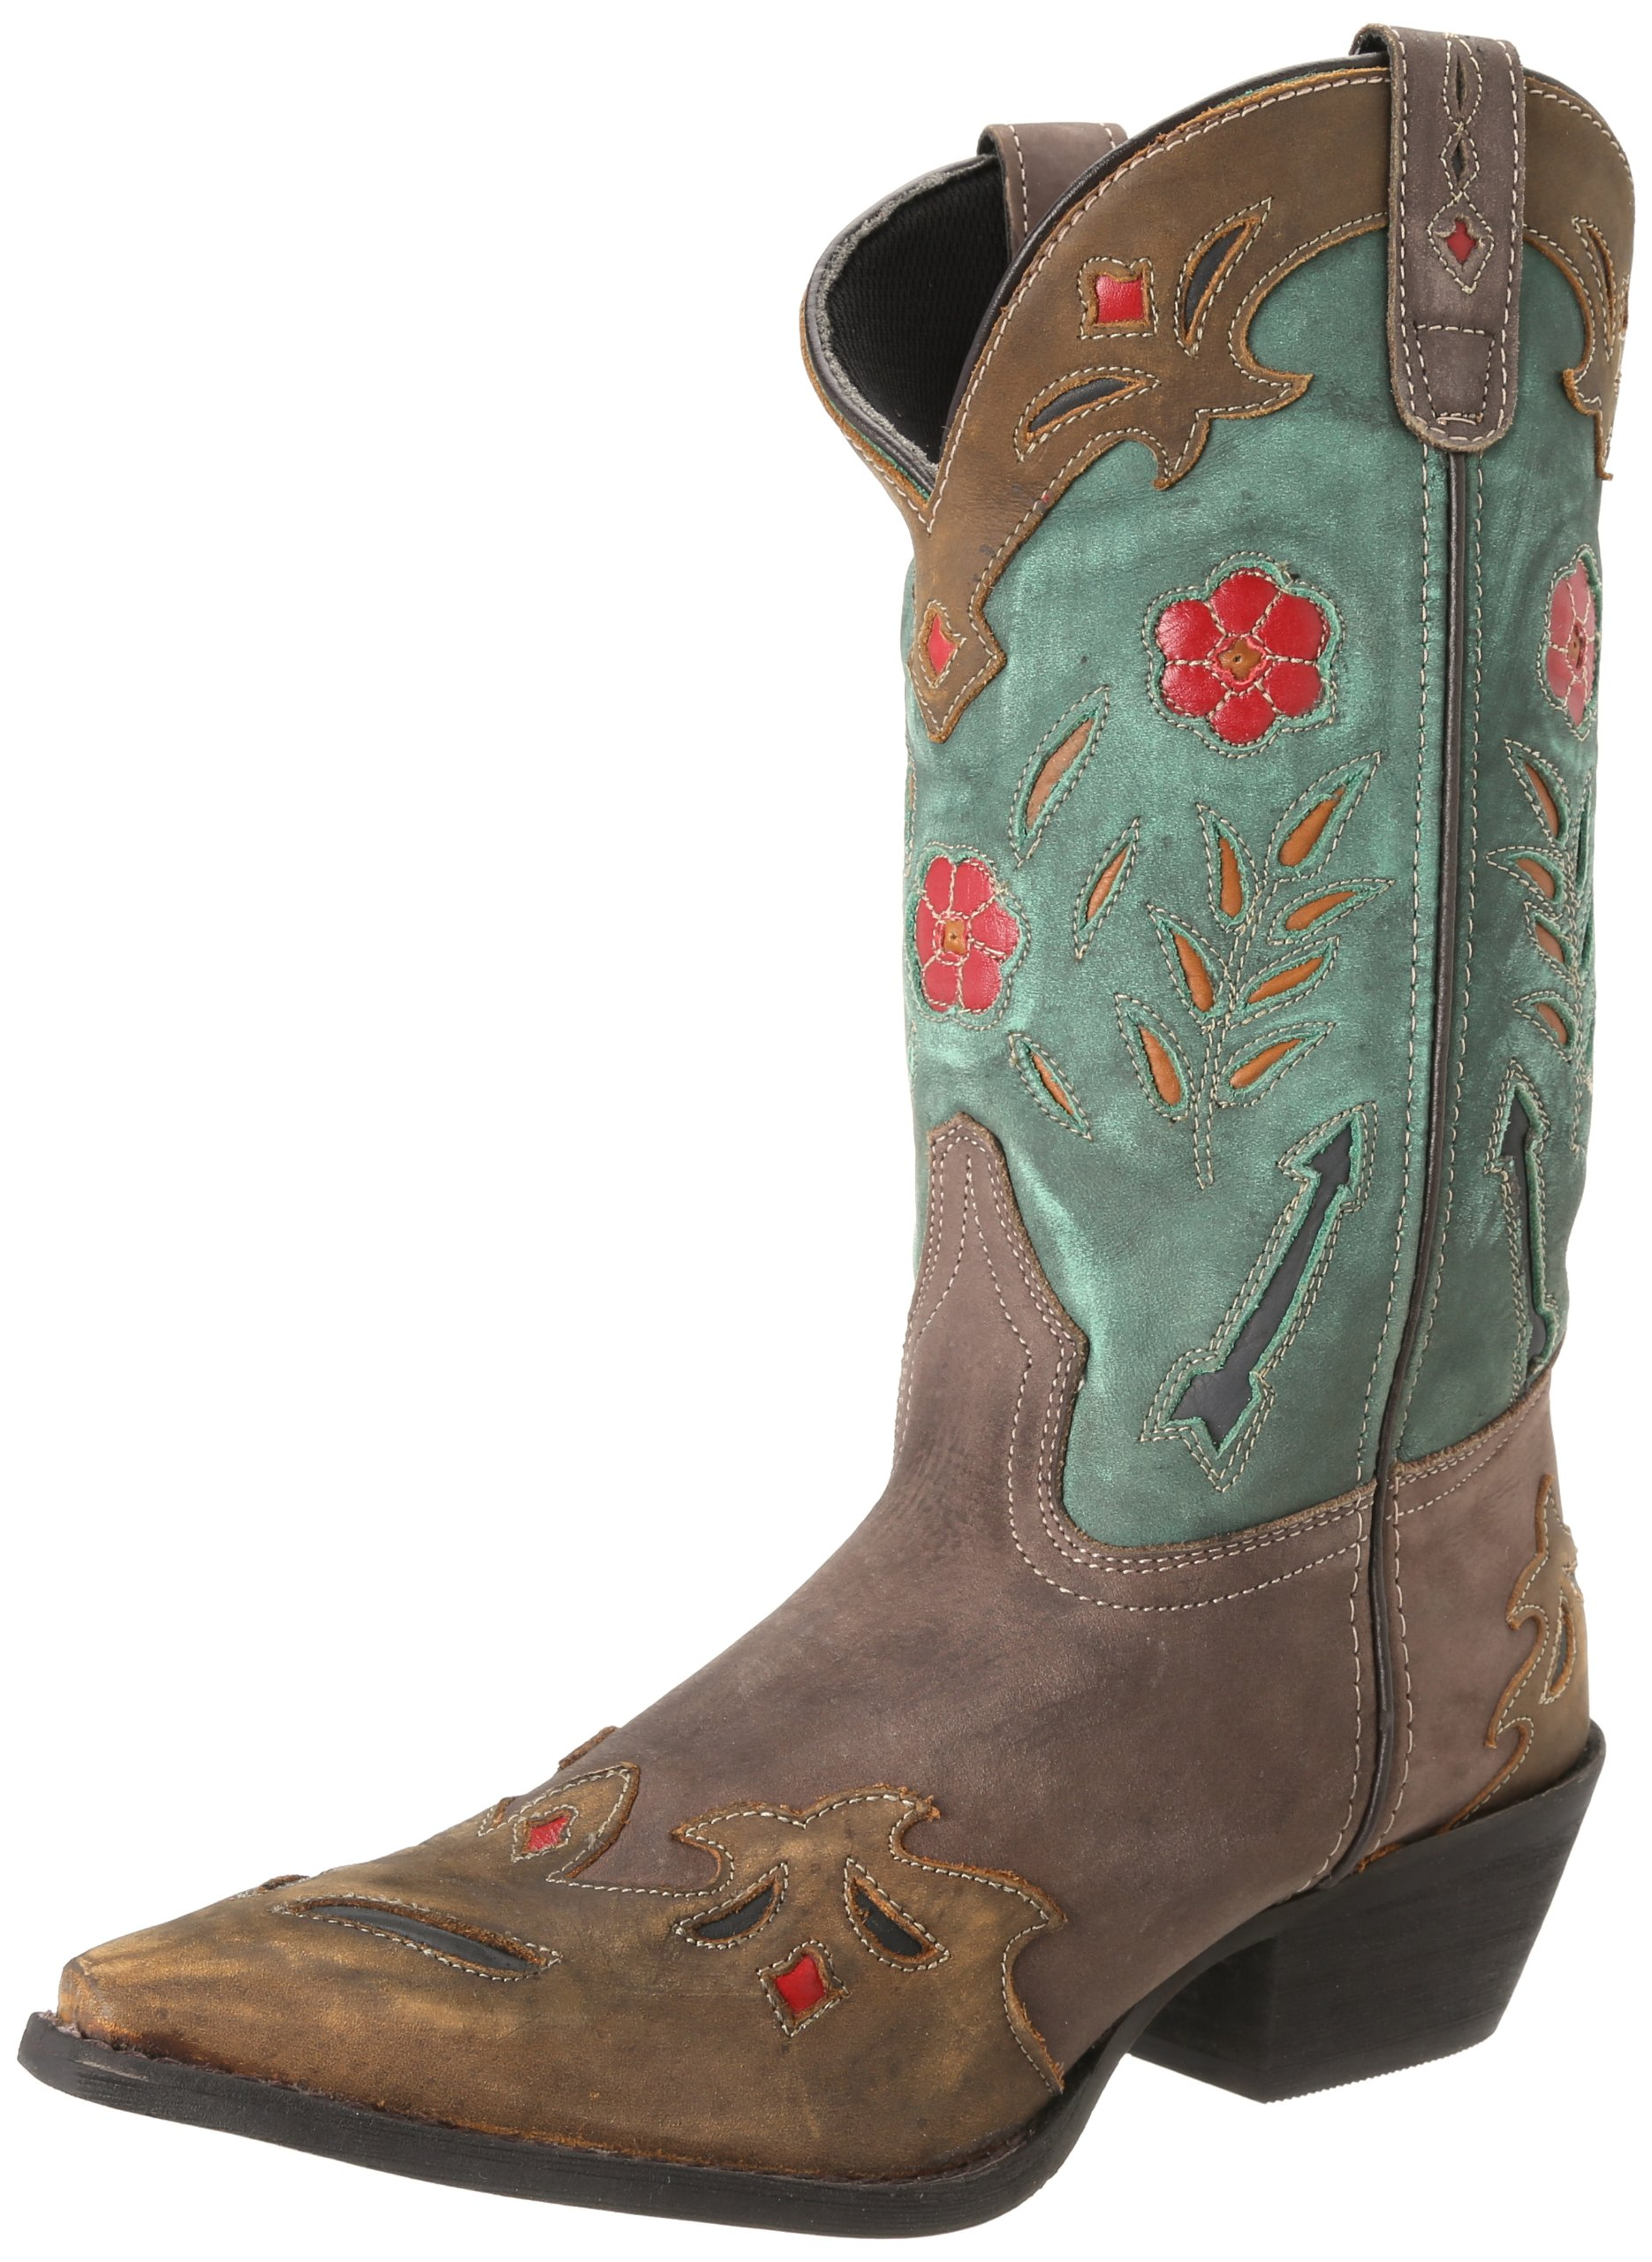 Laredo Women's Miss Kate Western Boot,Brown/Teal,9.5 M US